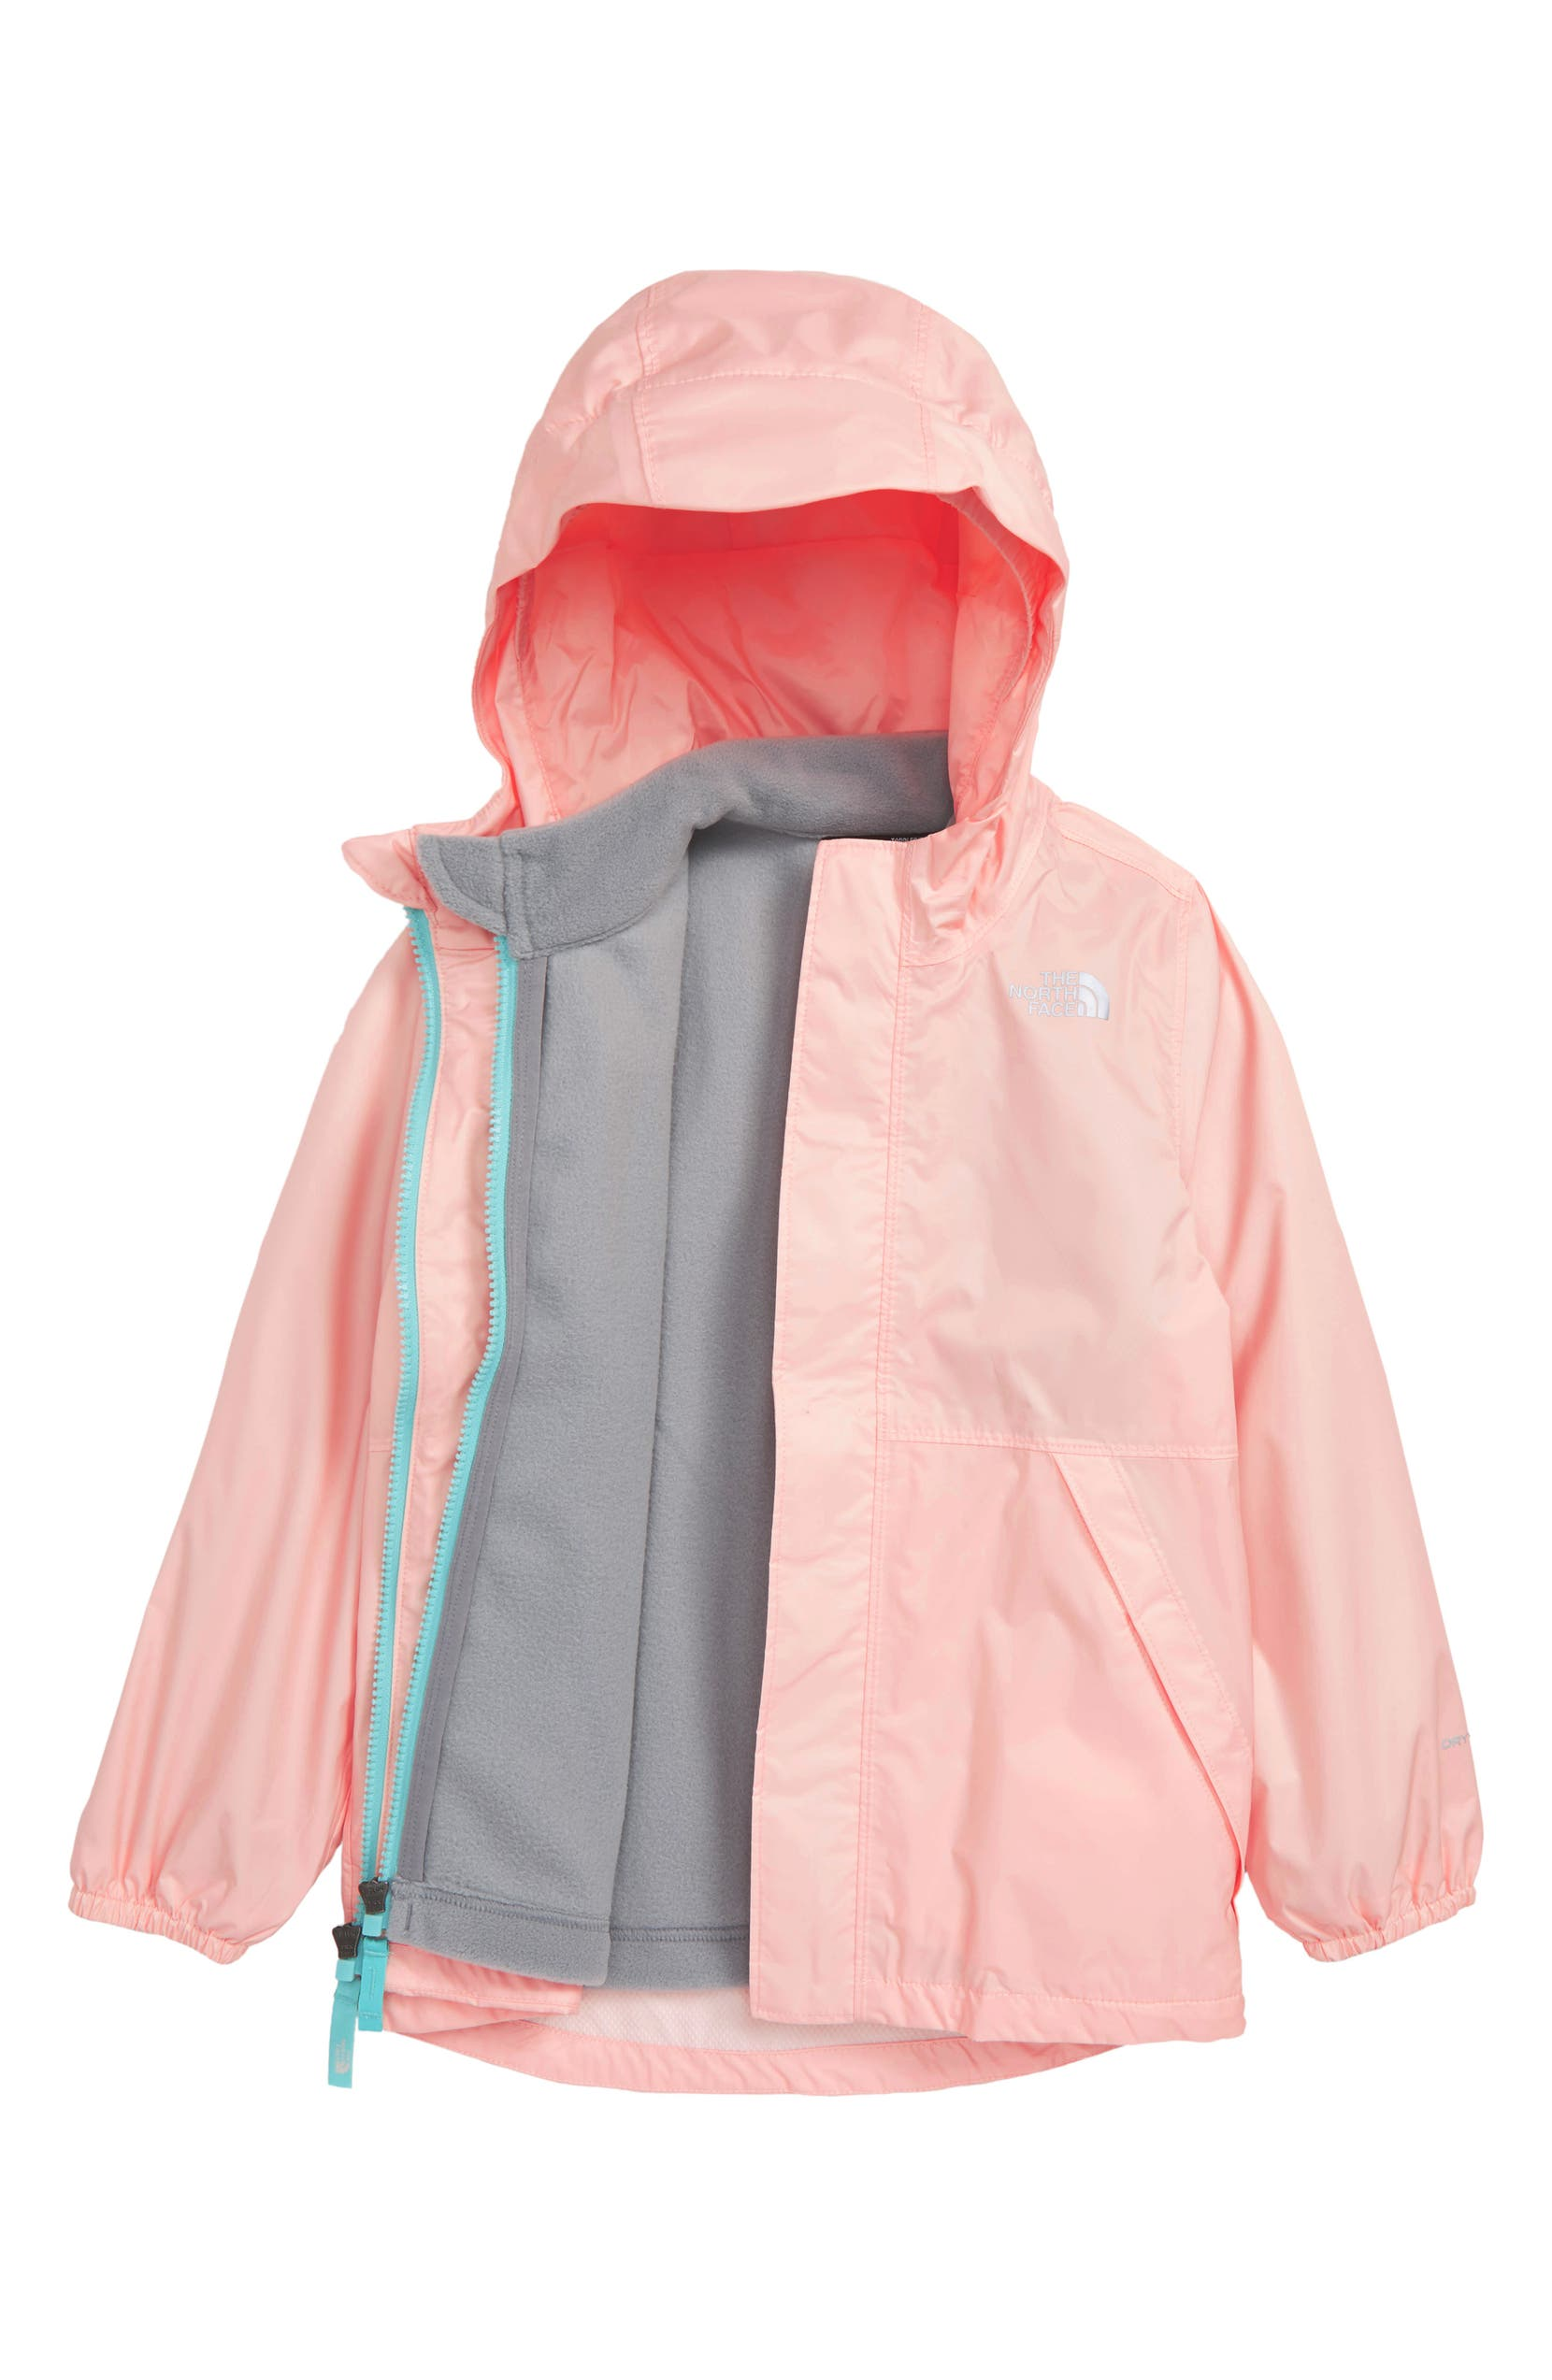 54535d559 The North Face Stormy Rain Triclimate® Waterproof 3-in-1 Jacket ...